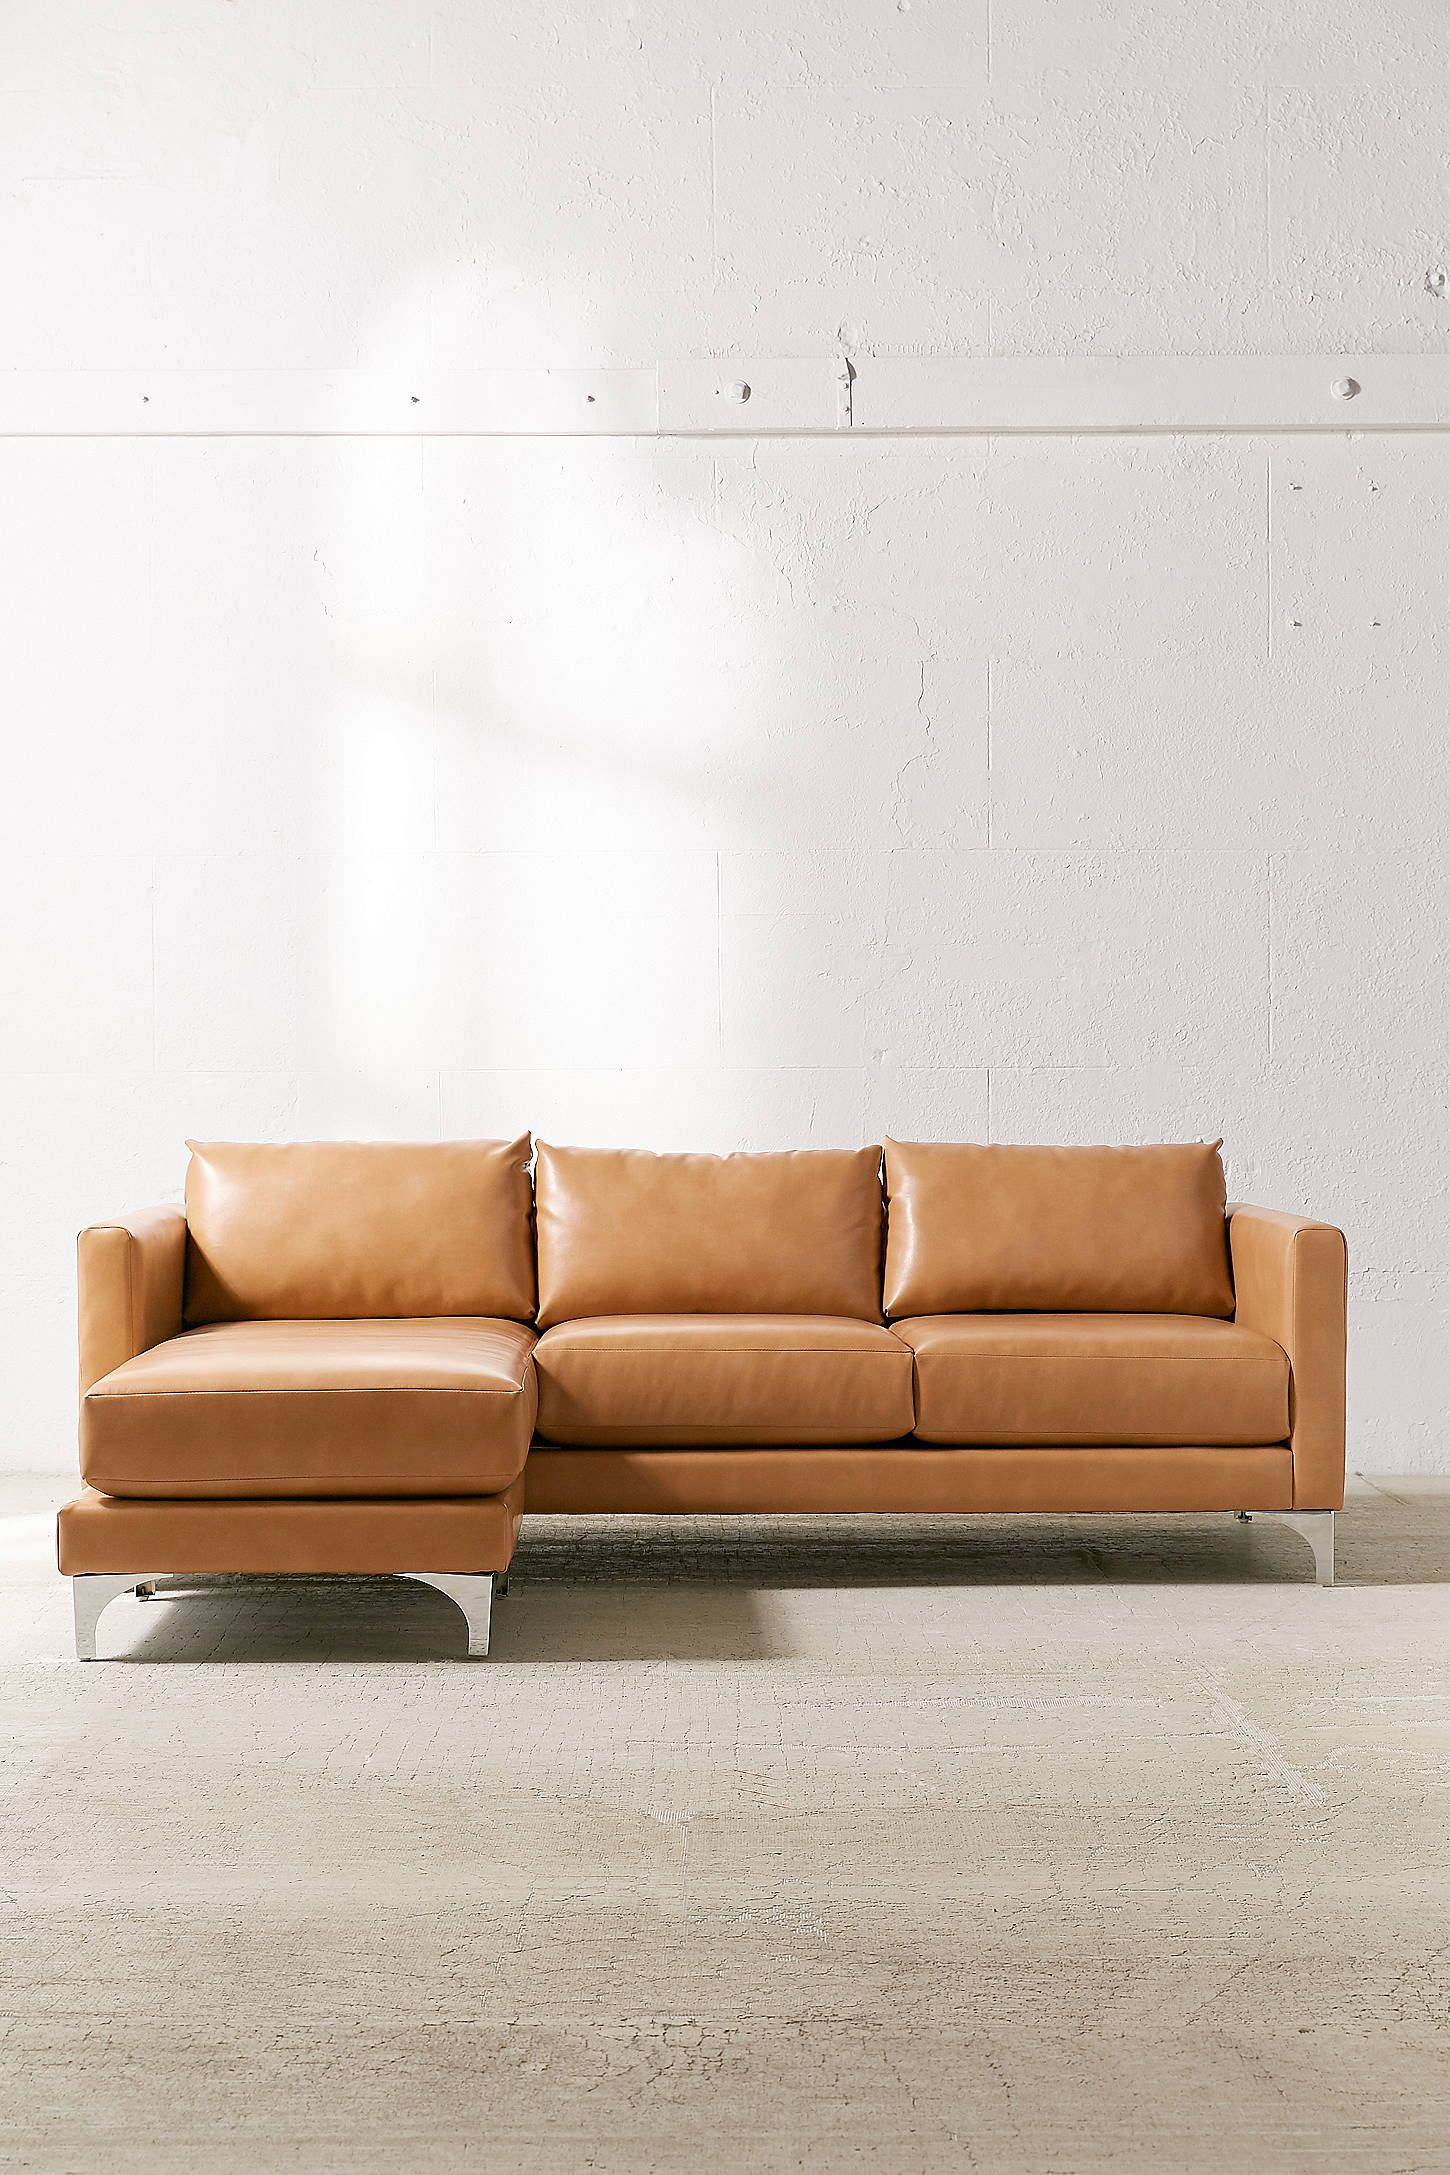 Marvelous Chamberlin Recycled Leather Sectional Sofa Inside Machost Co Dining Chair Design Ideas Machostcouk